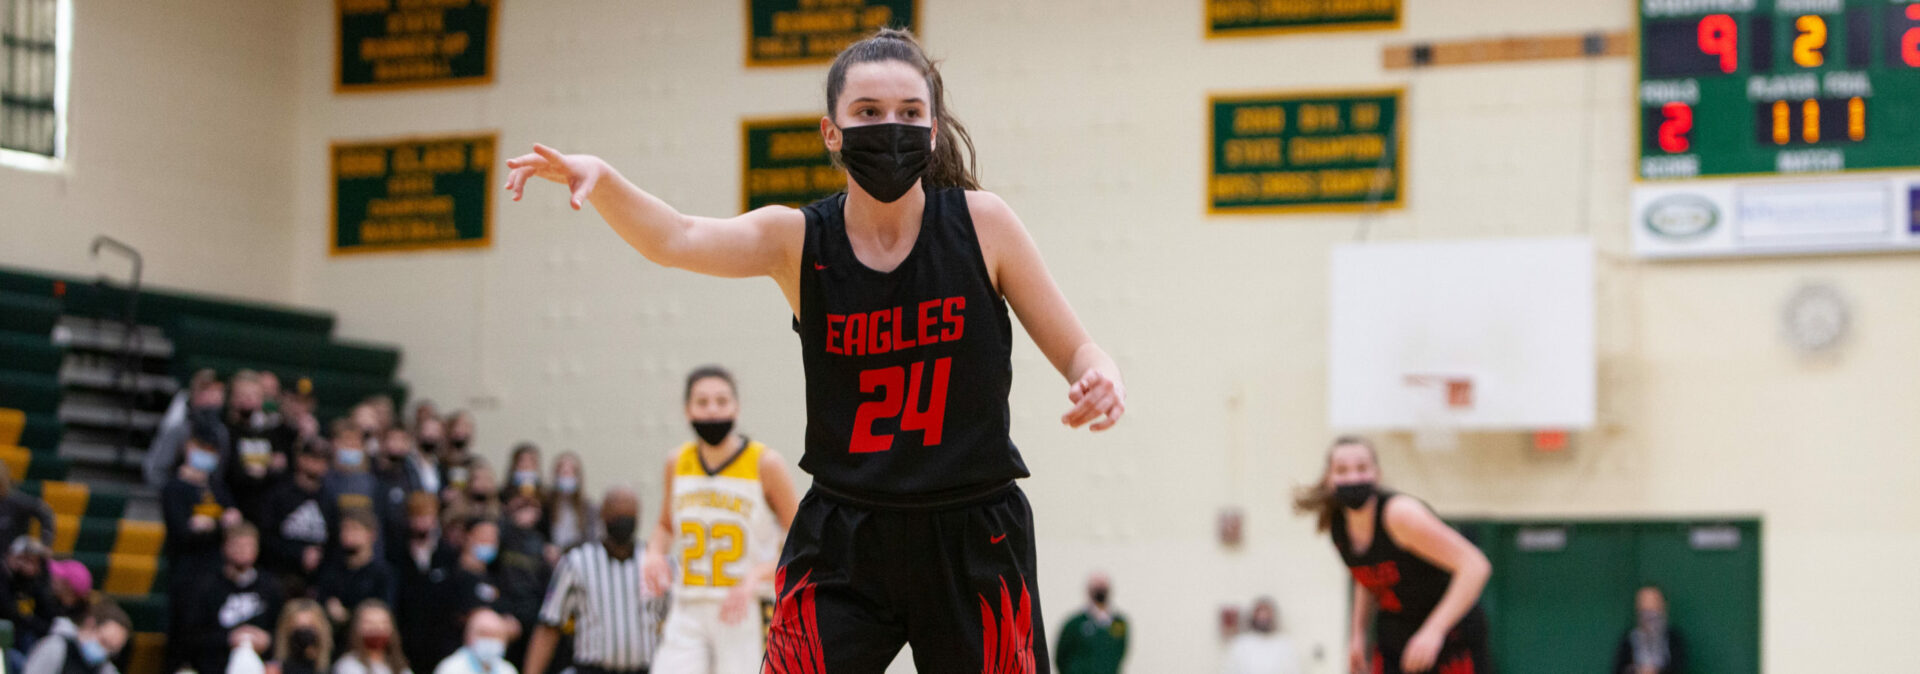 Kent City girls crush Covenant Christian 69-23 in the Division 3 regional finals, move on to state quarterfinals on Monday